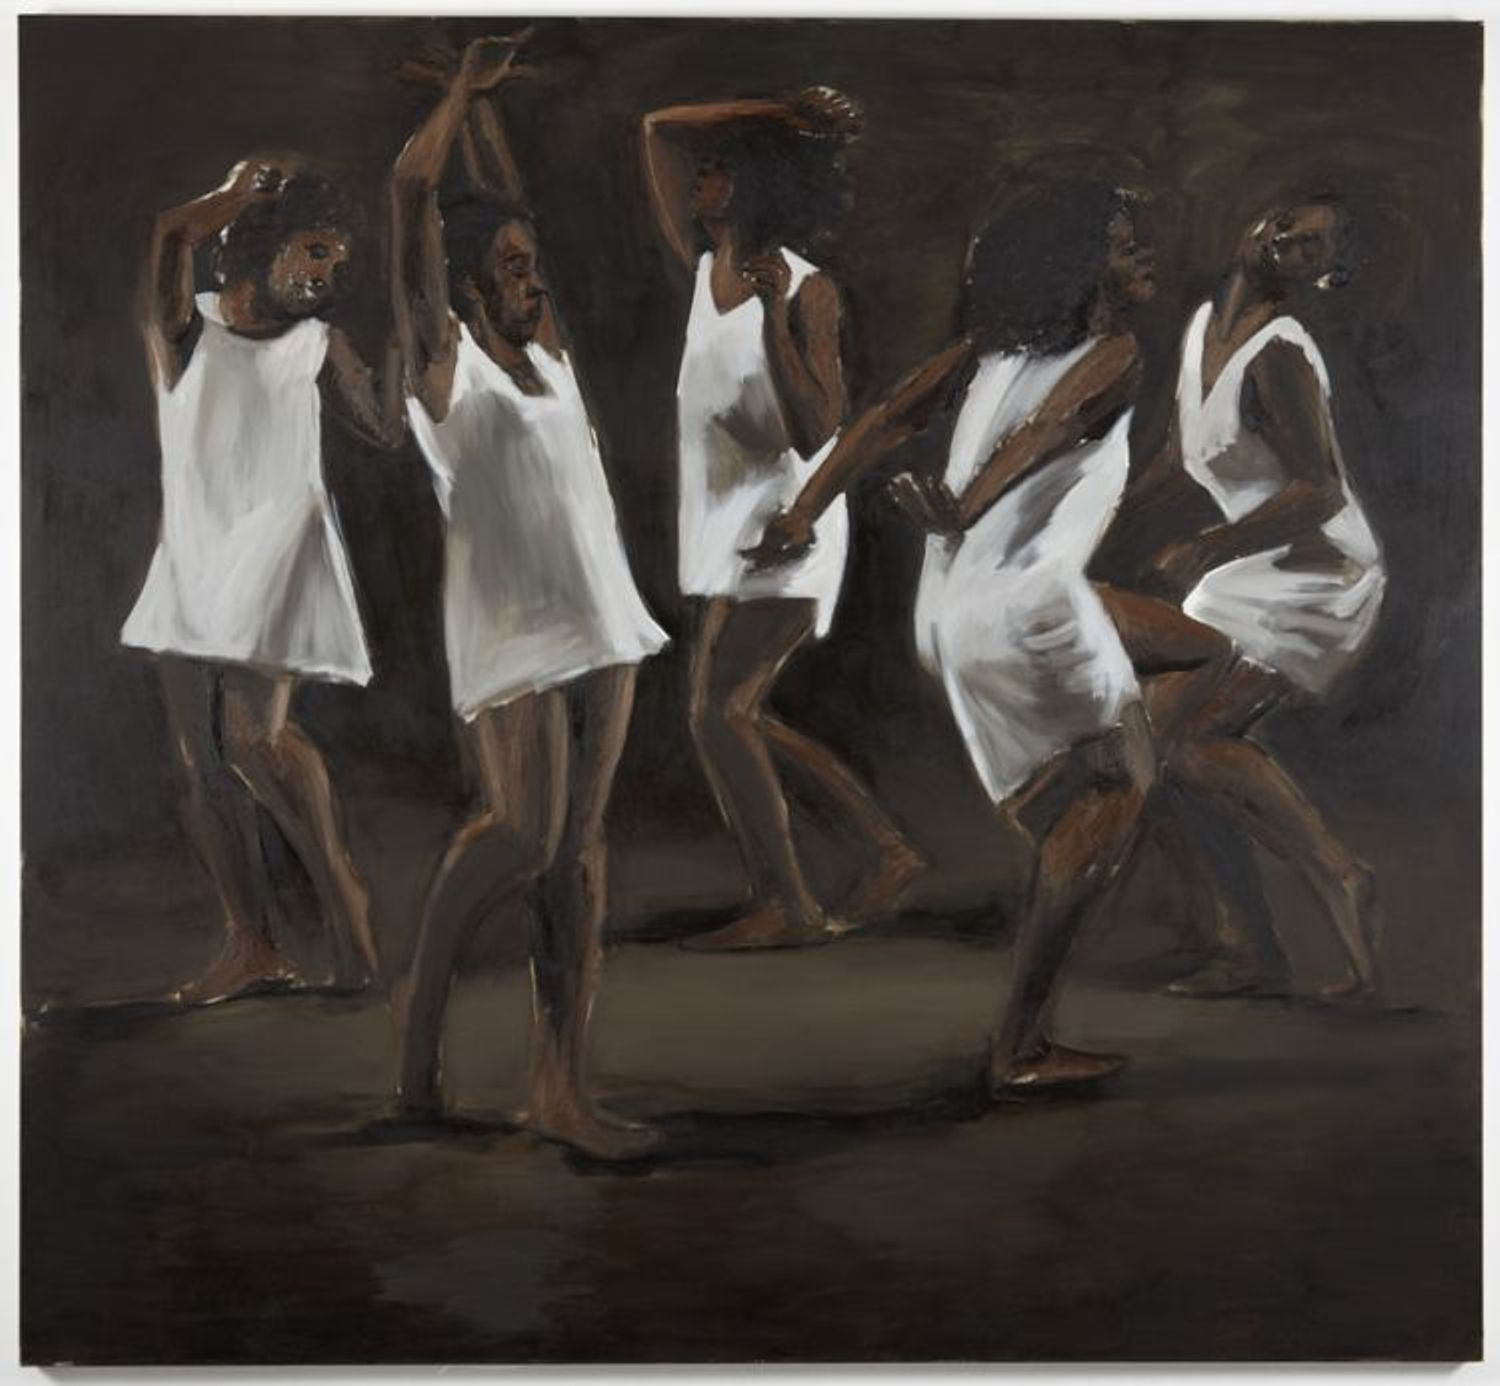 Lynette Yiadom-Boakye, The Hours Behind You, 2011